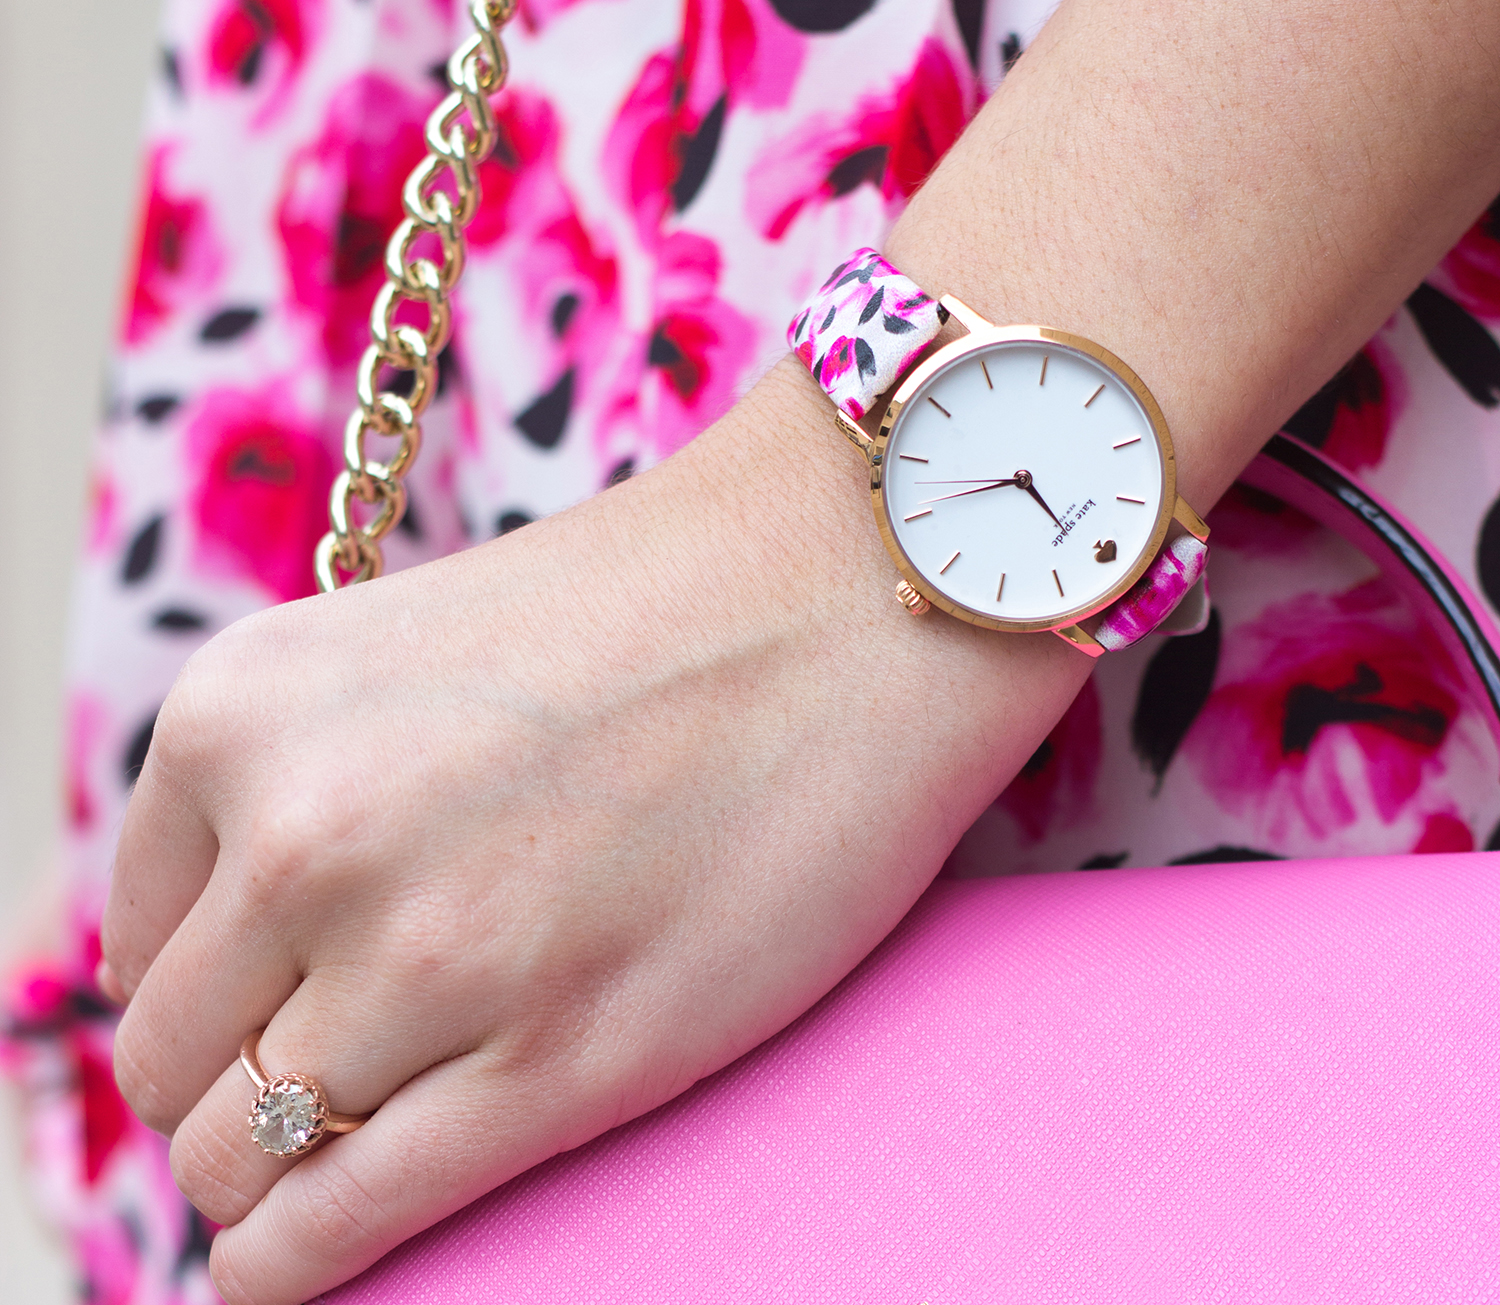 1-livvyland-blog-olivia-watson-austin-texas-fashion-blogger-kate-spade-mini-nora-rouge-pink-handbag-floral-print-watch